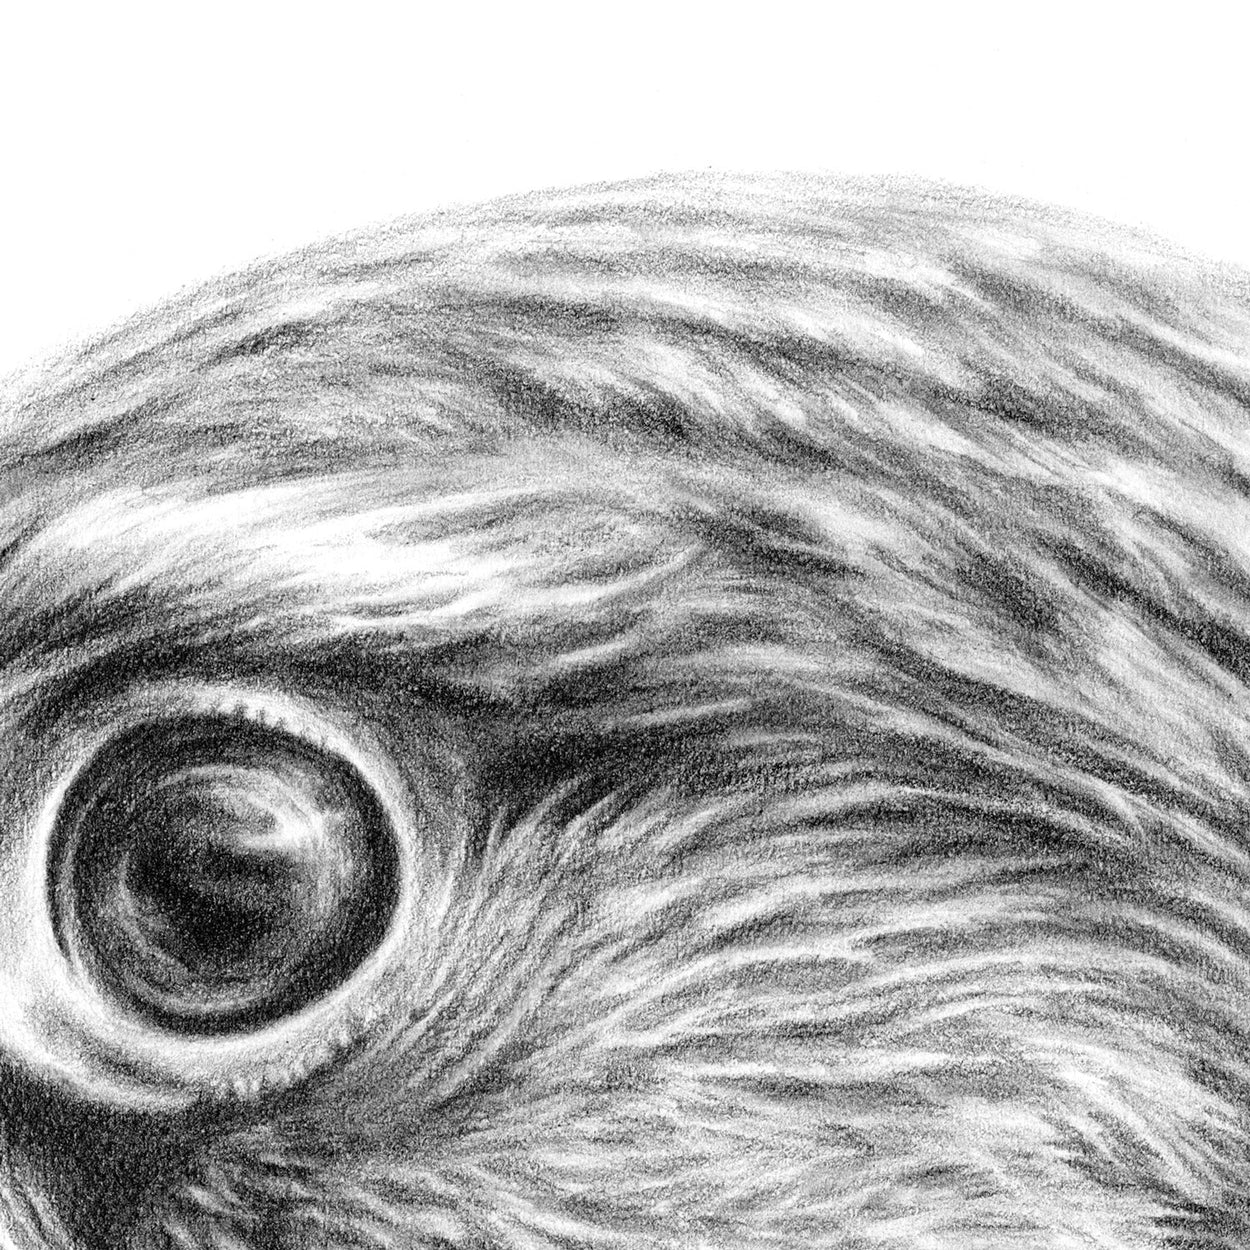 Kestrel Drawing Close-up 1 - The Thriving Wild - Jill Dimond